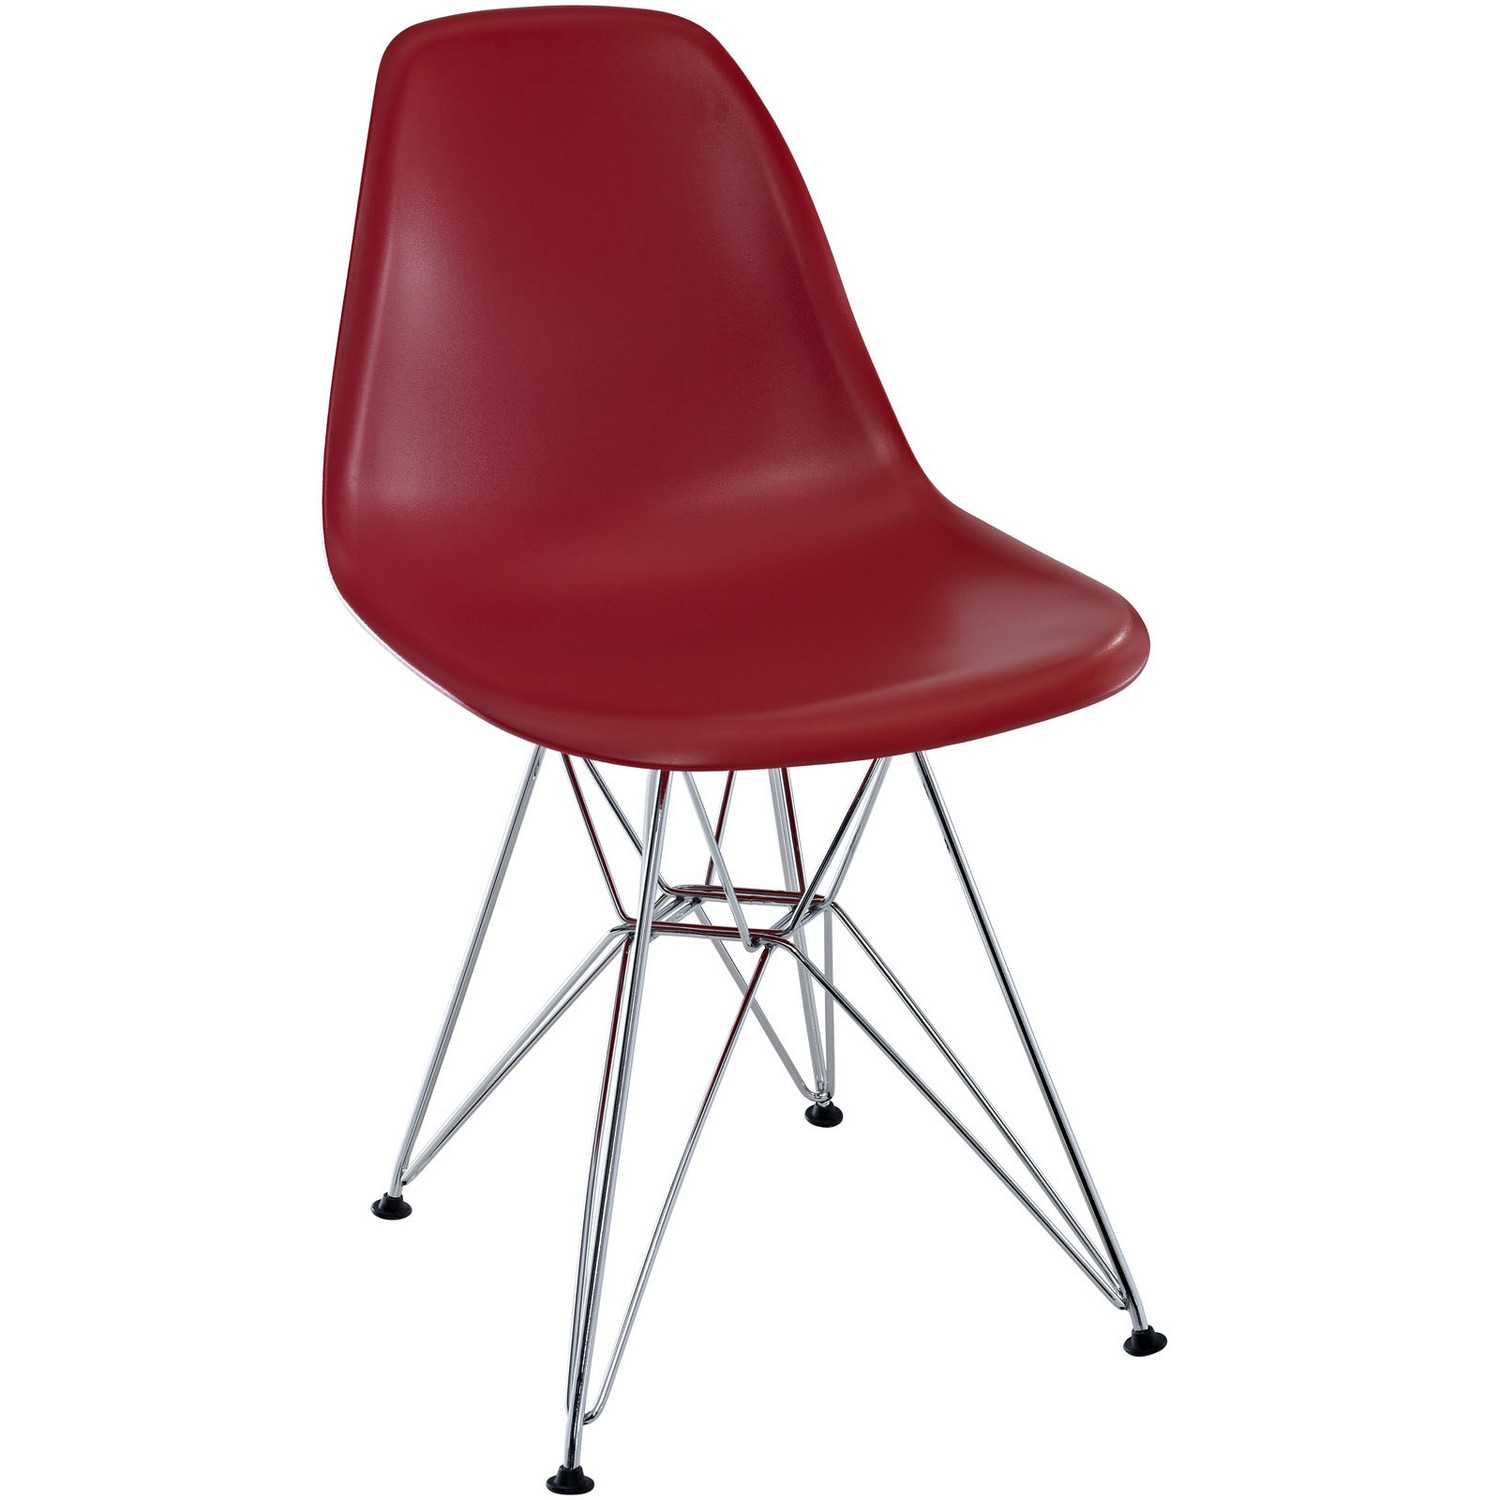 Modway Paris Dining Side Chair - Red